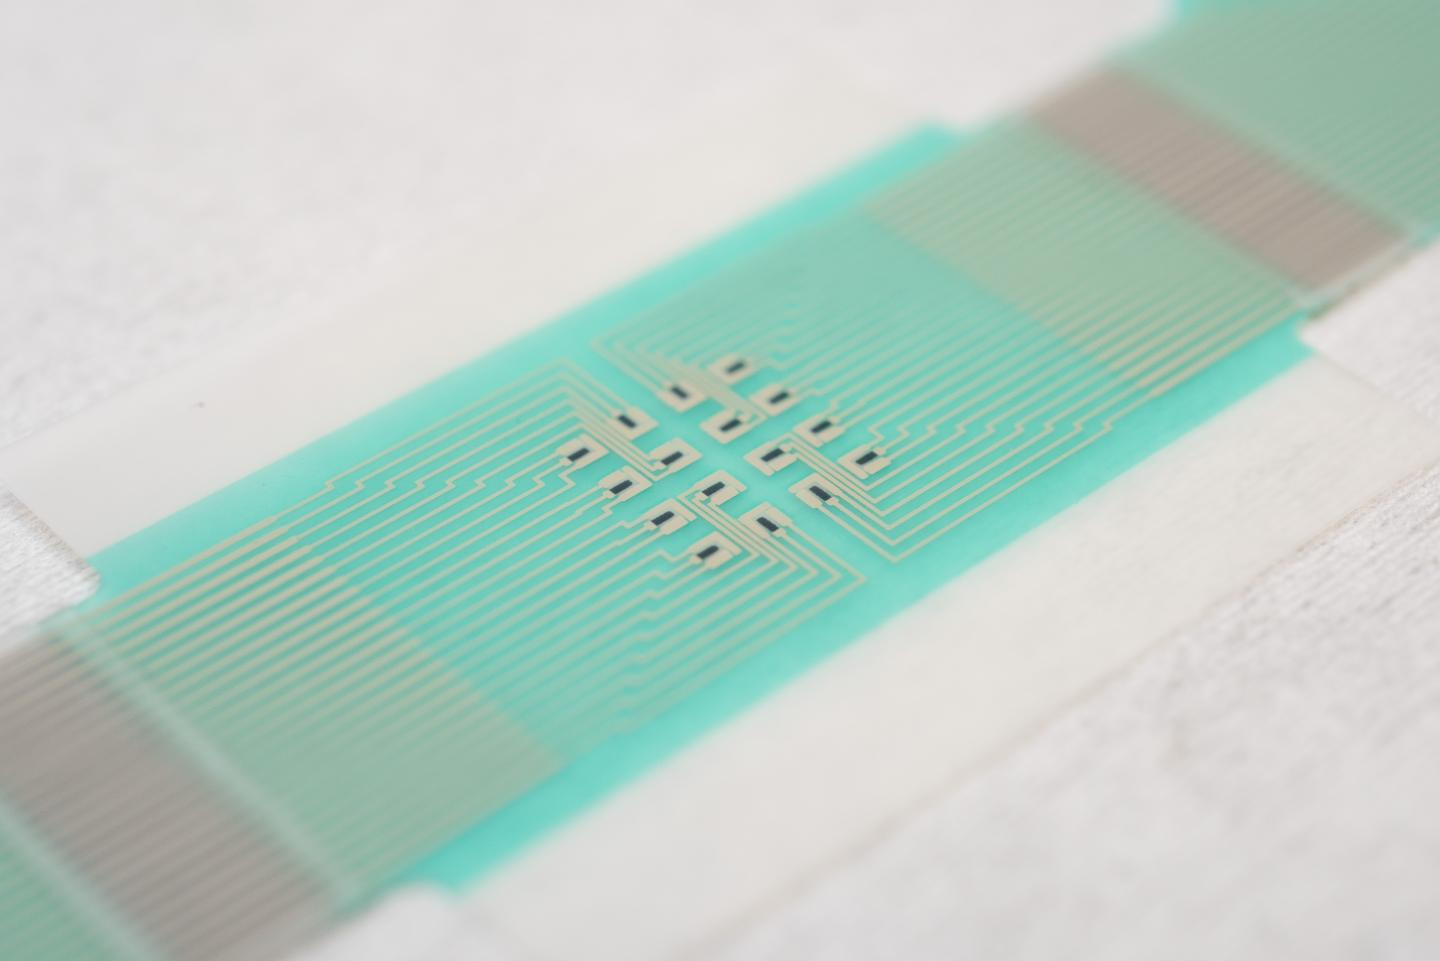 Bloodless Diabetes Monitor Patch Close Up